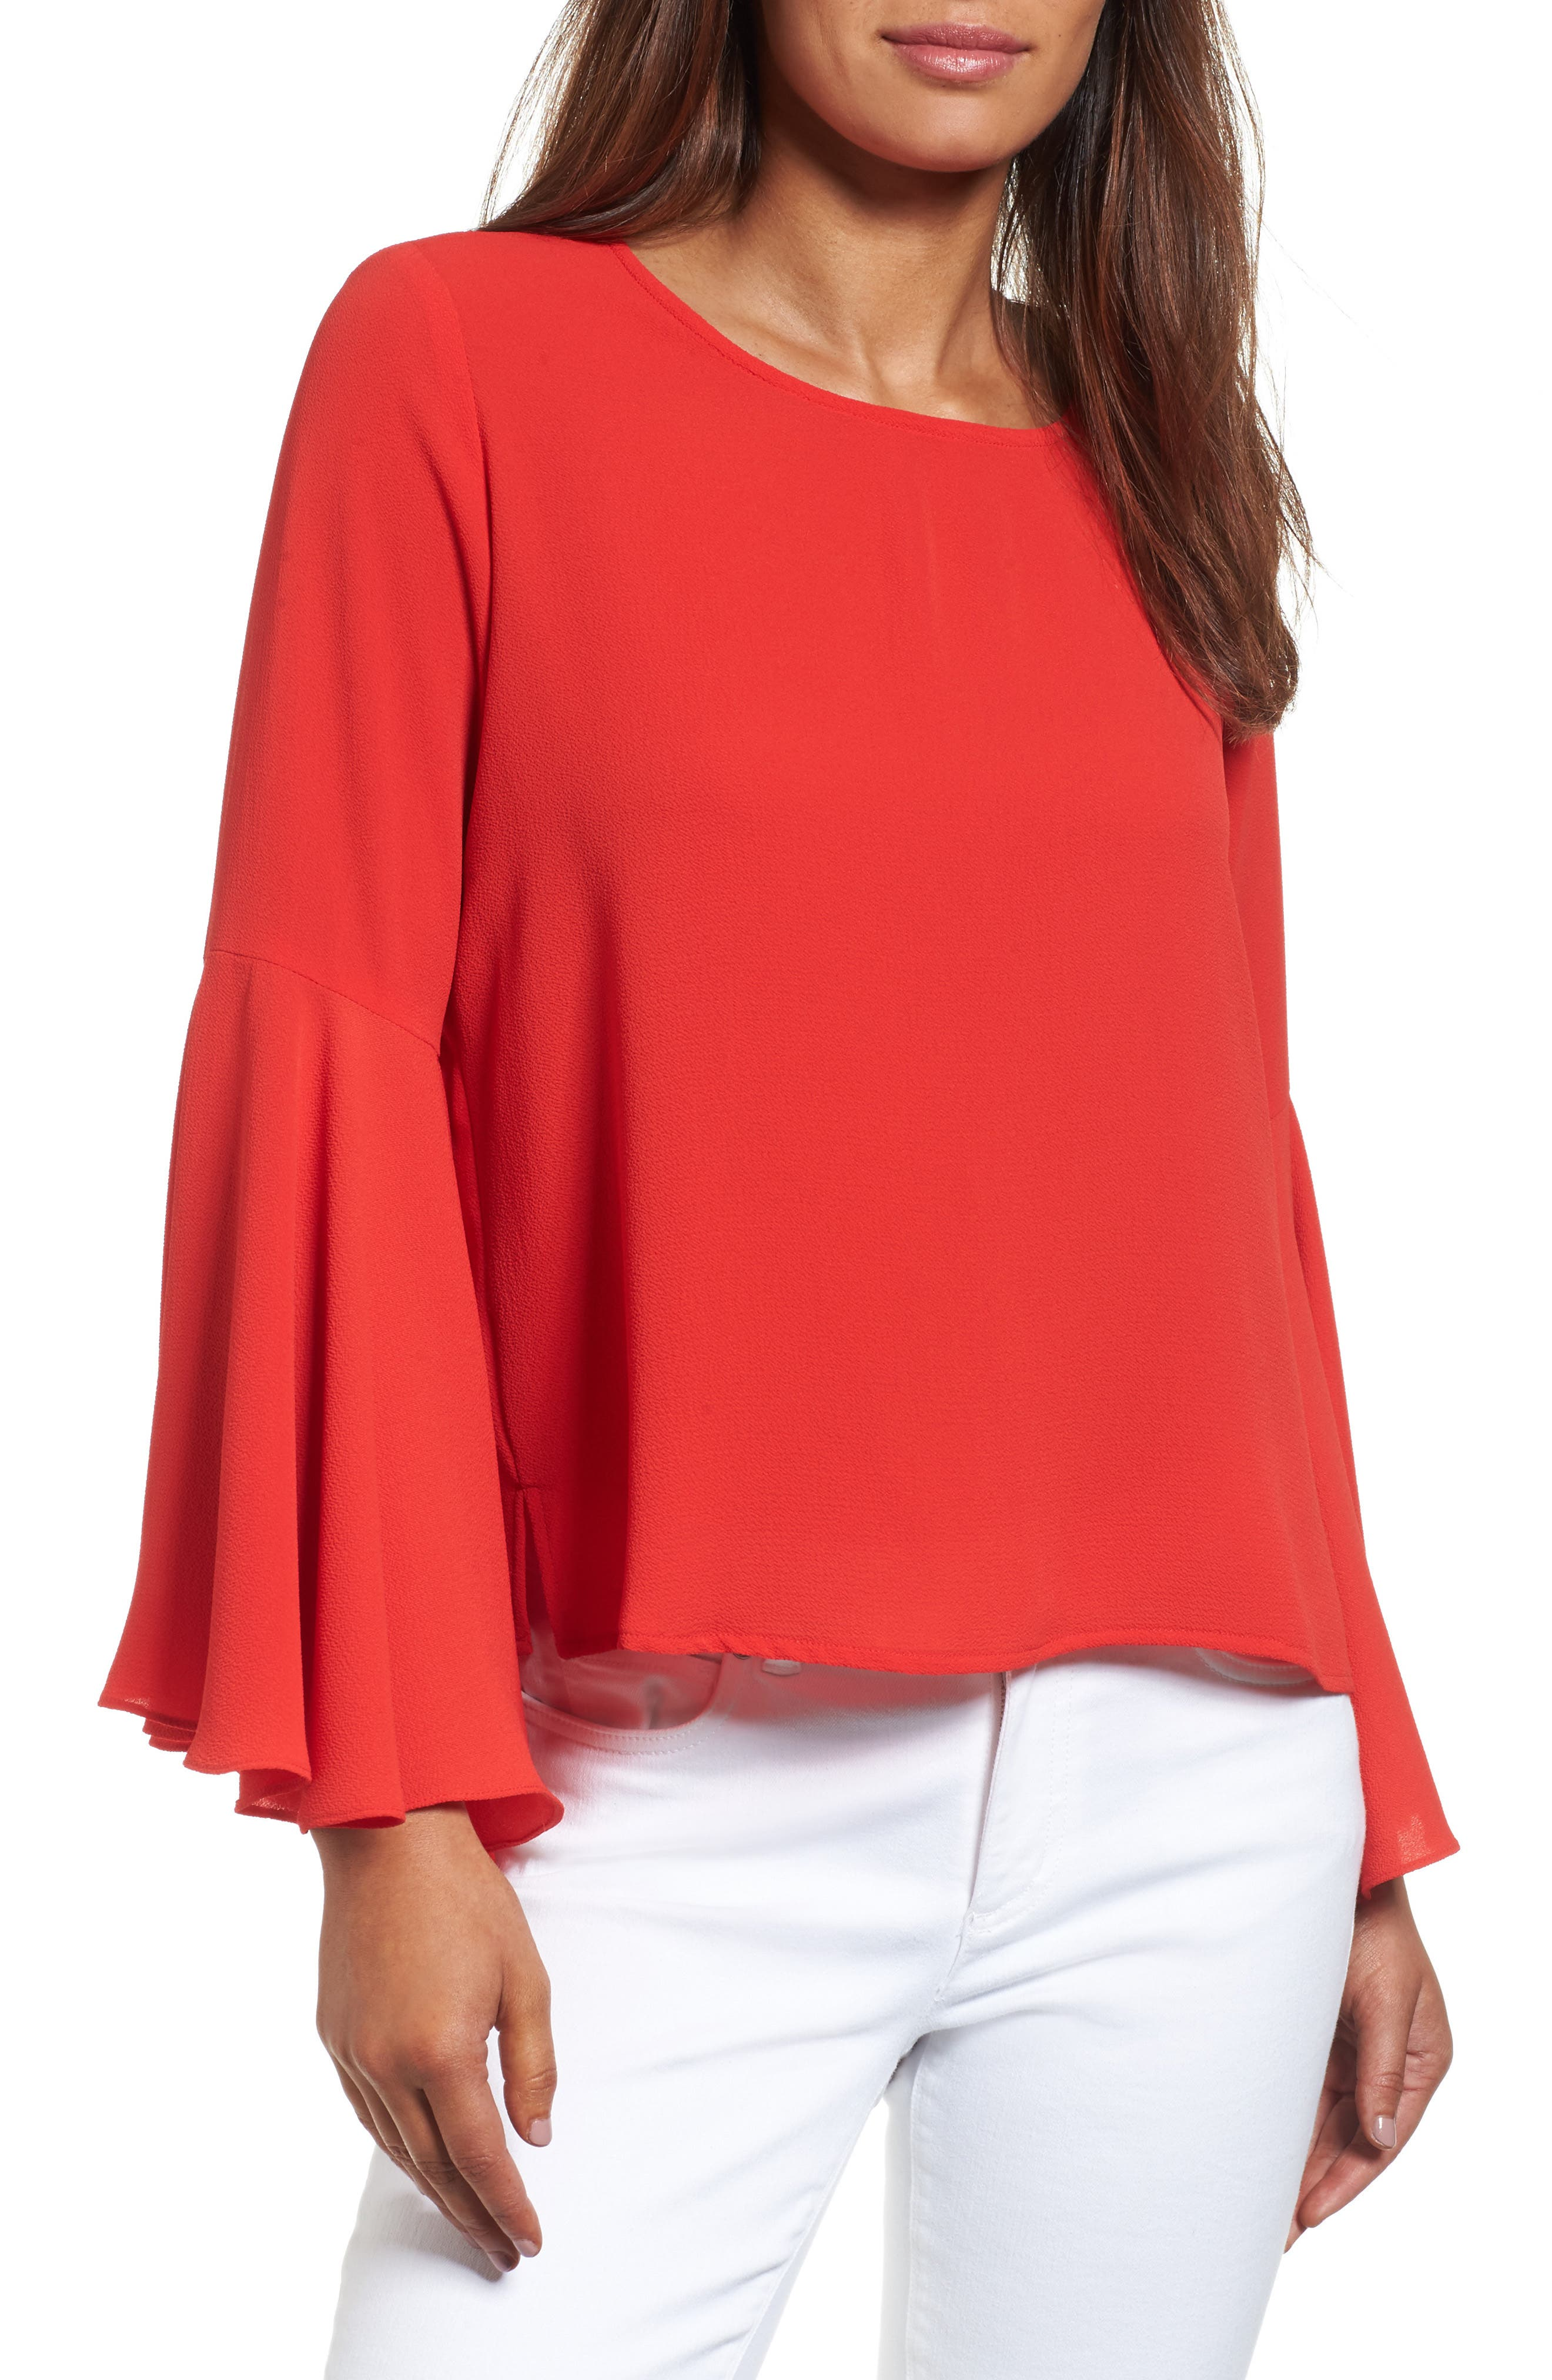 Alternate Image 1 Selected - Vince Camuto Bell Sleeve Blouse (Regular & Petite)